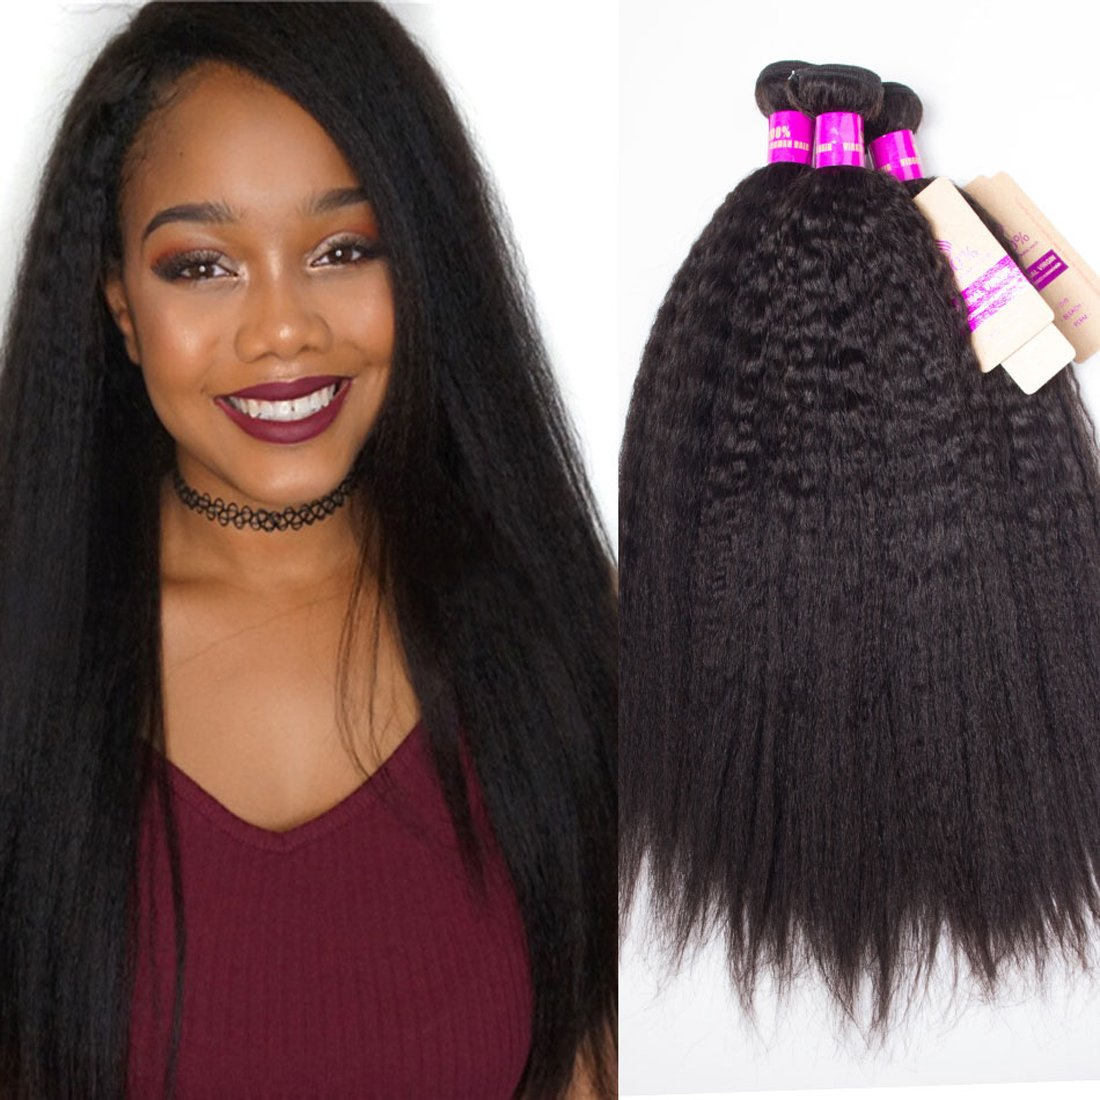 Amazon.com   Tinashe 10A Brazilian Kinky Straight Hair 4 Bundles Saw in Human  Hair Extensions Natural Color Yaki Straight(18 20 22 24)   Beauty be991651c0b8